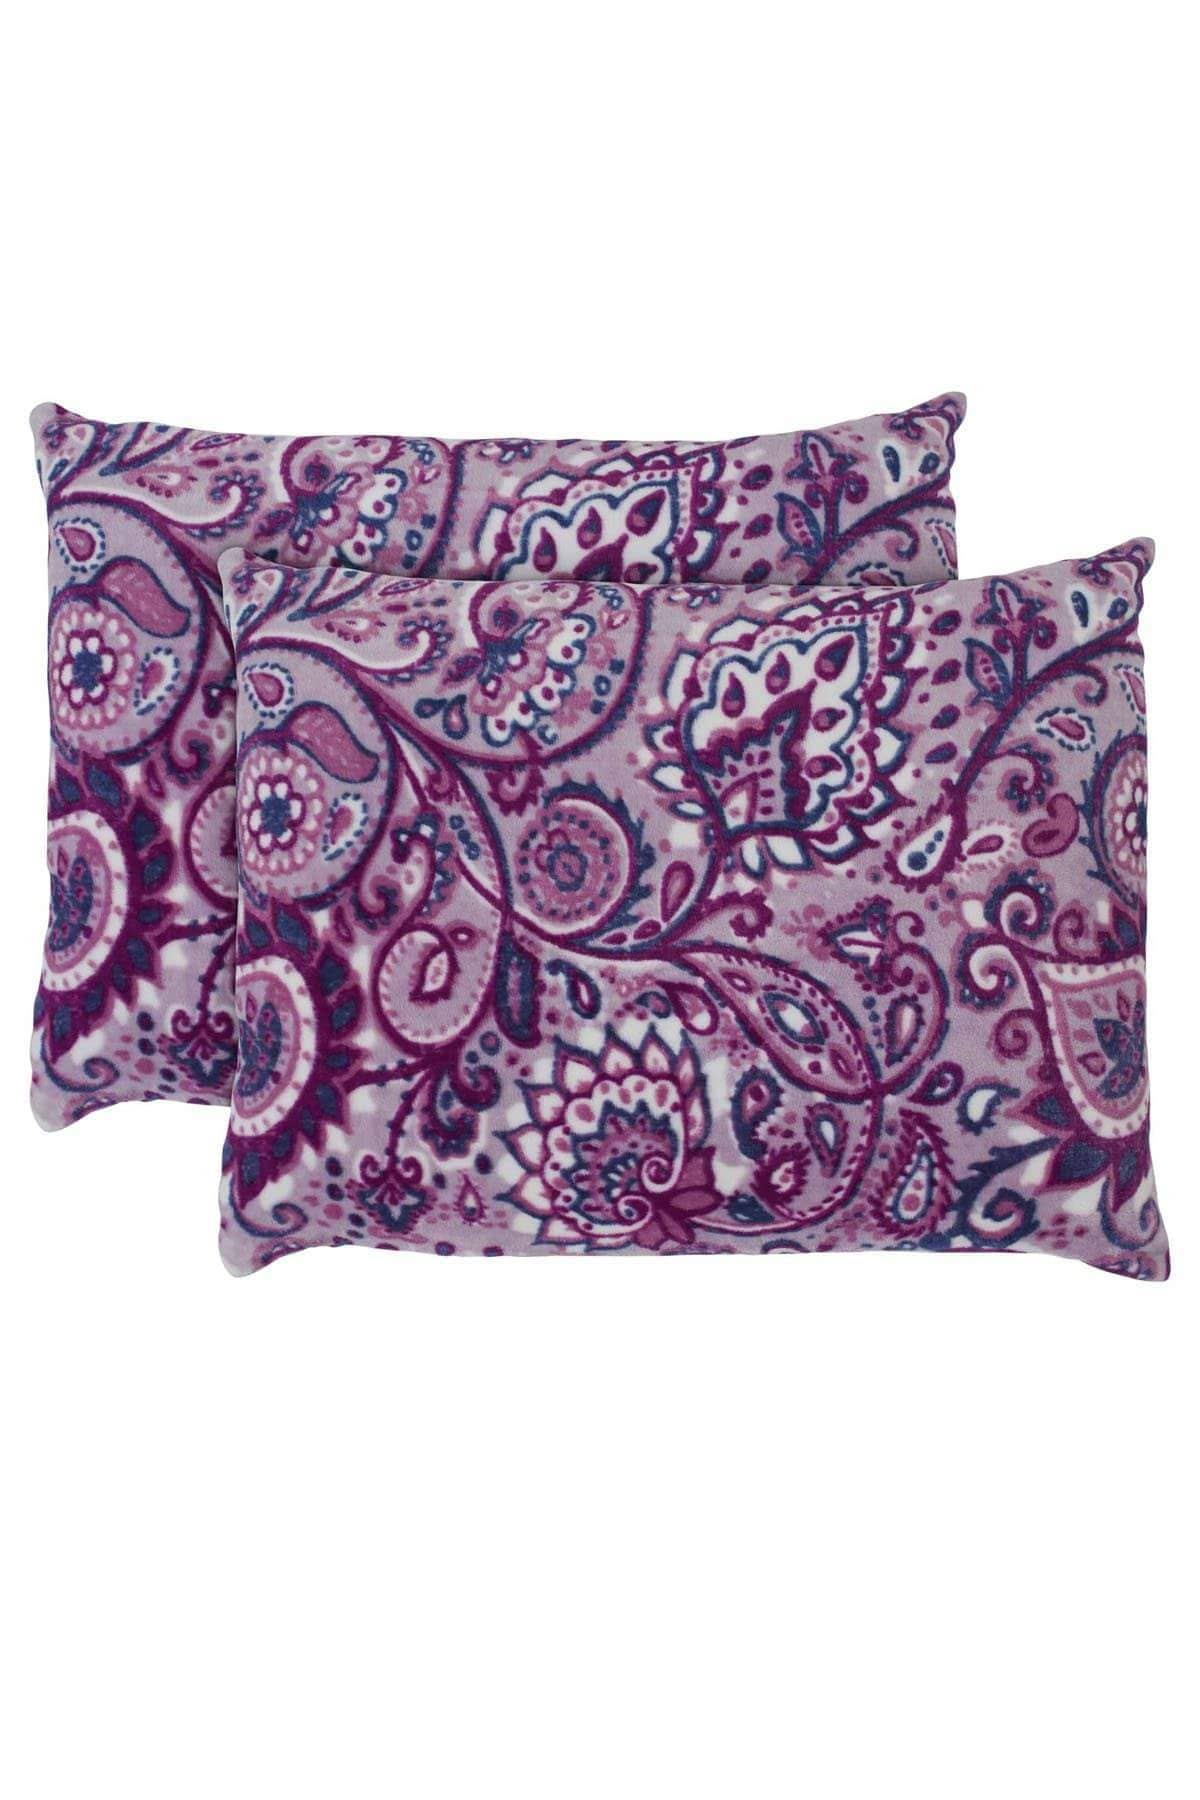 Ivory Ella BEDDING Carina Berry Ultra Soft Plush Pillow Pair